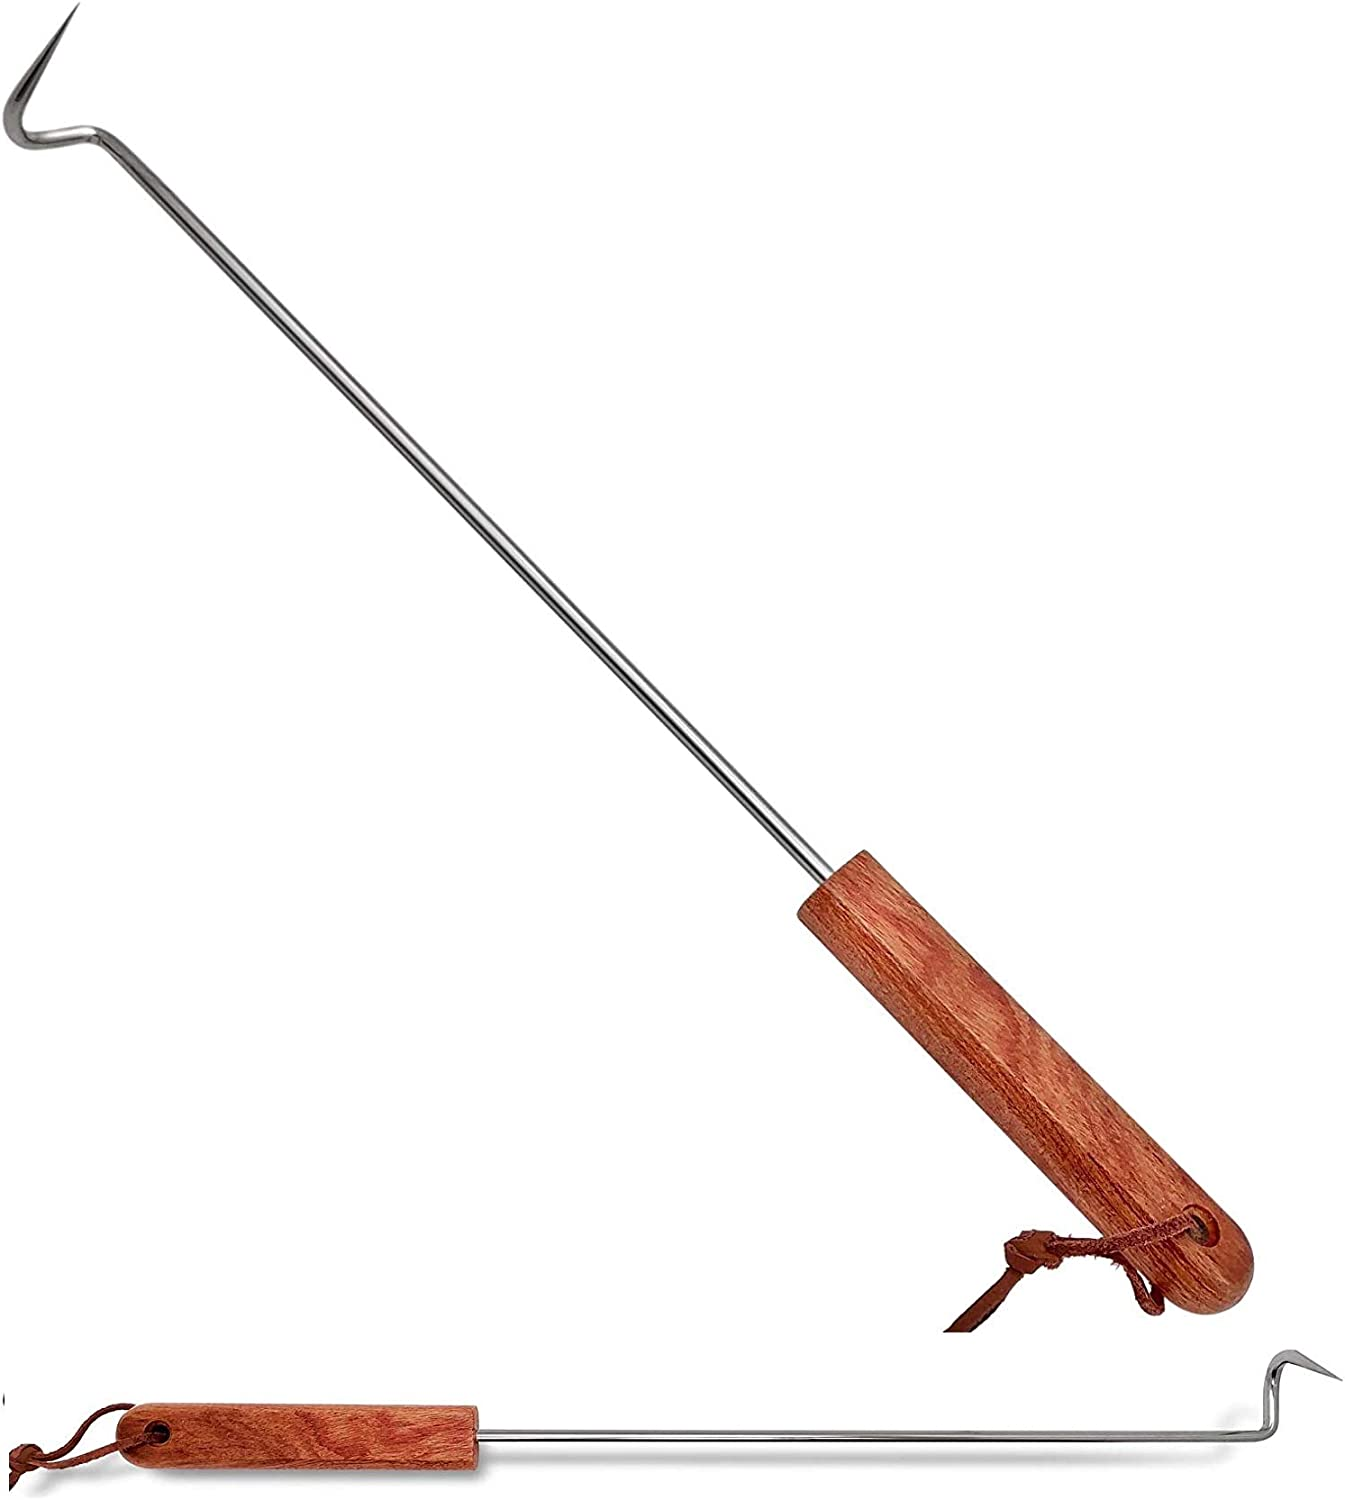 LQLMCOS Food Flipper Turner Hooks Stainless Steel BBQ Meat Hooks Cooking Barbecue Turners Hooks Grill Accessories with Wooden Handle for Grilling & Smoking (Style A-One Pack)